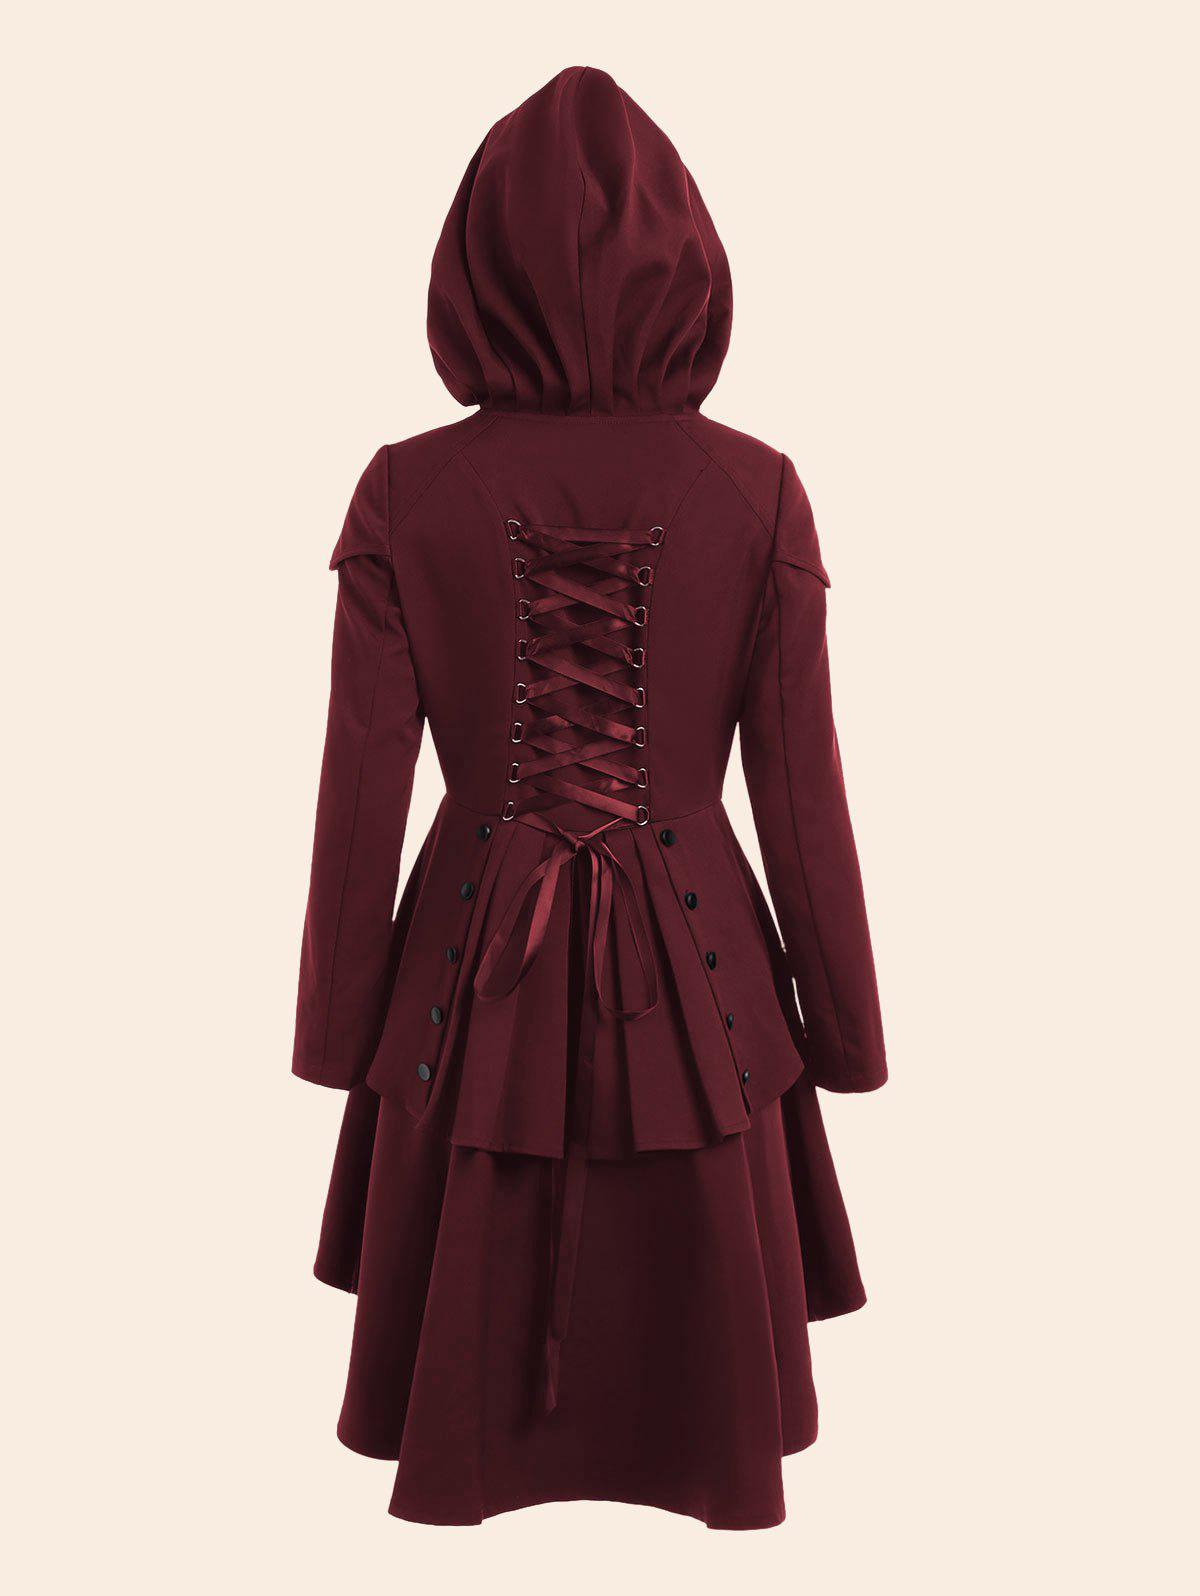 Lace Up High Low Plus Size Hooded CoatWOMEN<br><br>Size: 2XL; Color: WINE RED; Clothes Type: Others; Material: Polyester; Type: High Waist; Shirt Length: Regular; Sleeve Length: Full; Collar: Hooded; Closure Type: Single Breasted; Pattern Type: Solid; Embellishment: Criss-Cross; Style: Gothic; Season: Fall,Spring; With Belt: No; Weight: 0.7500kg; Package Contents: 1 x Coat;